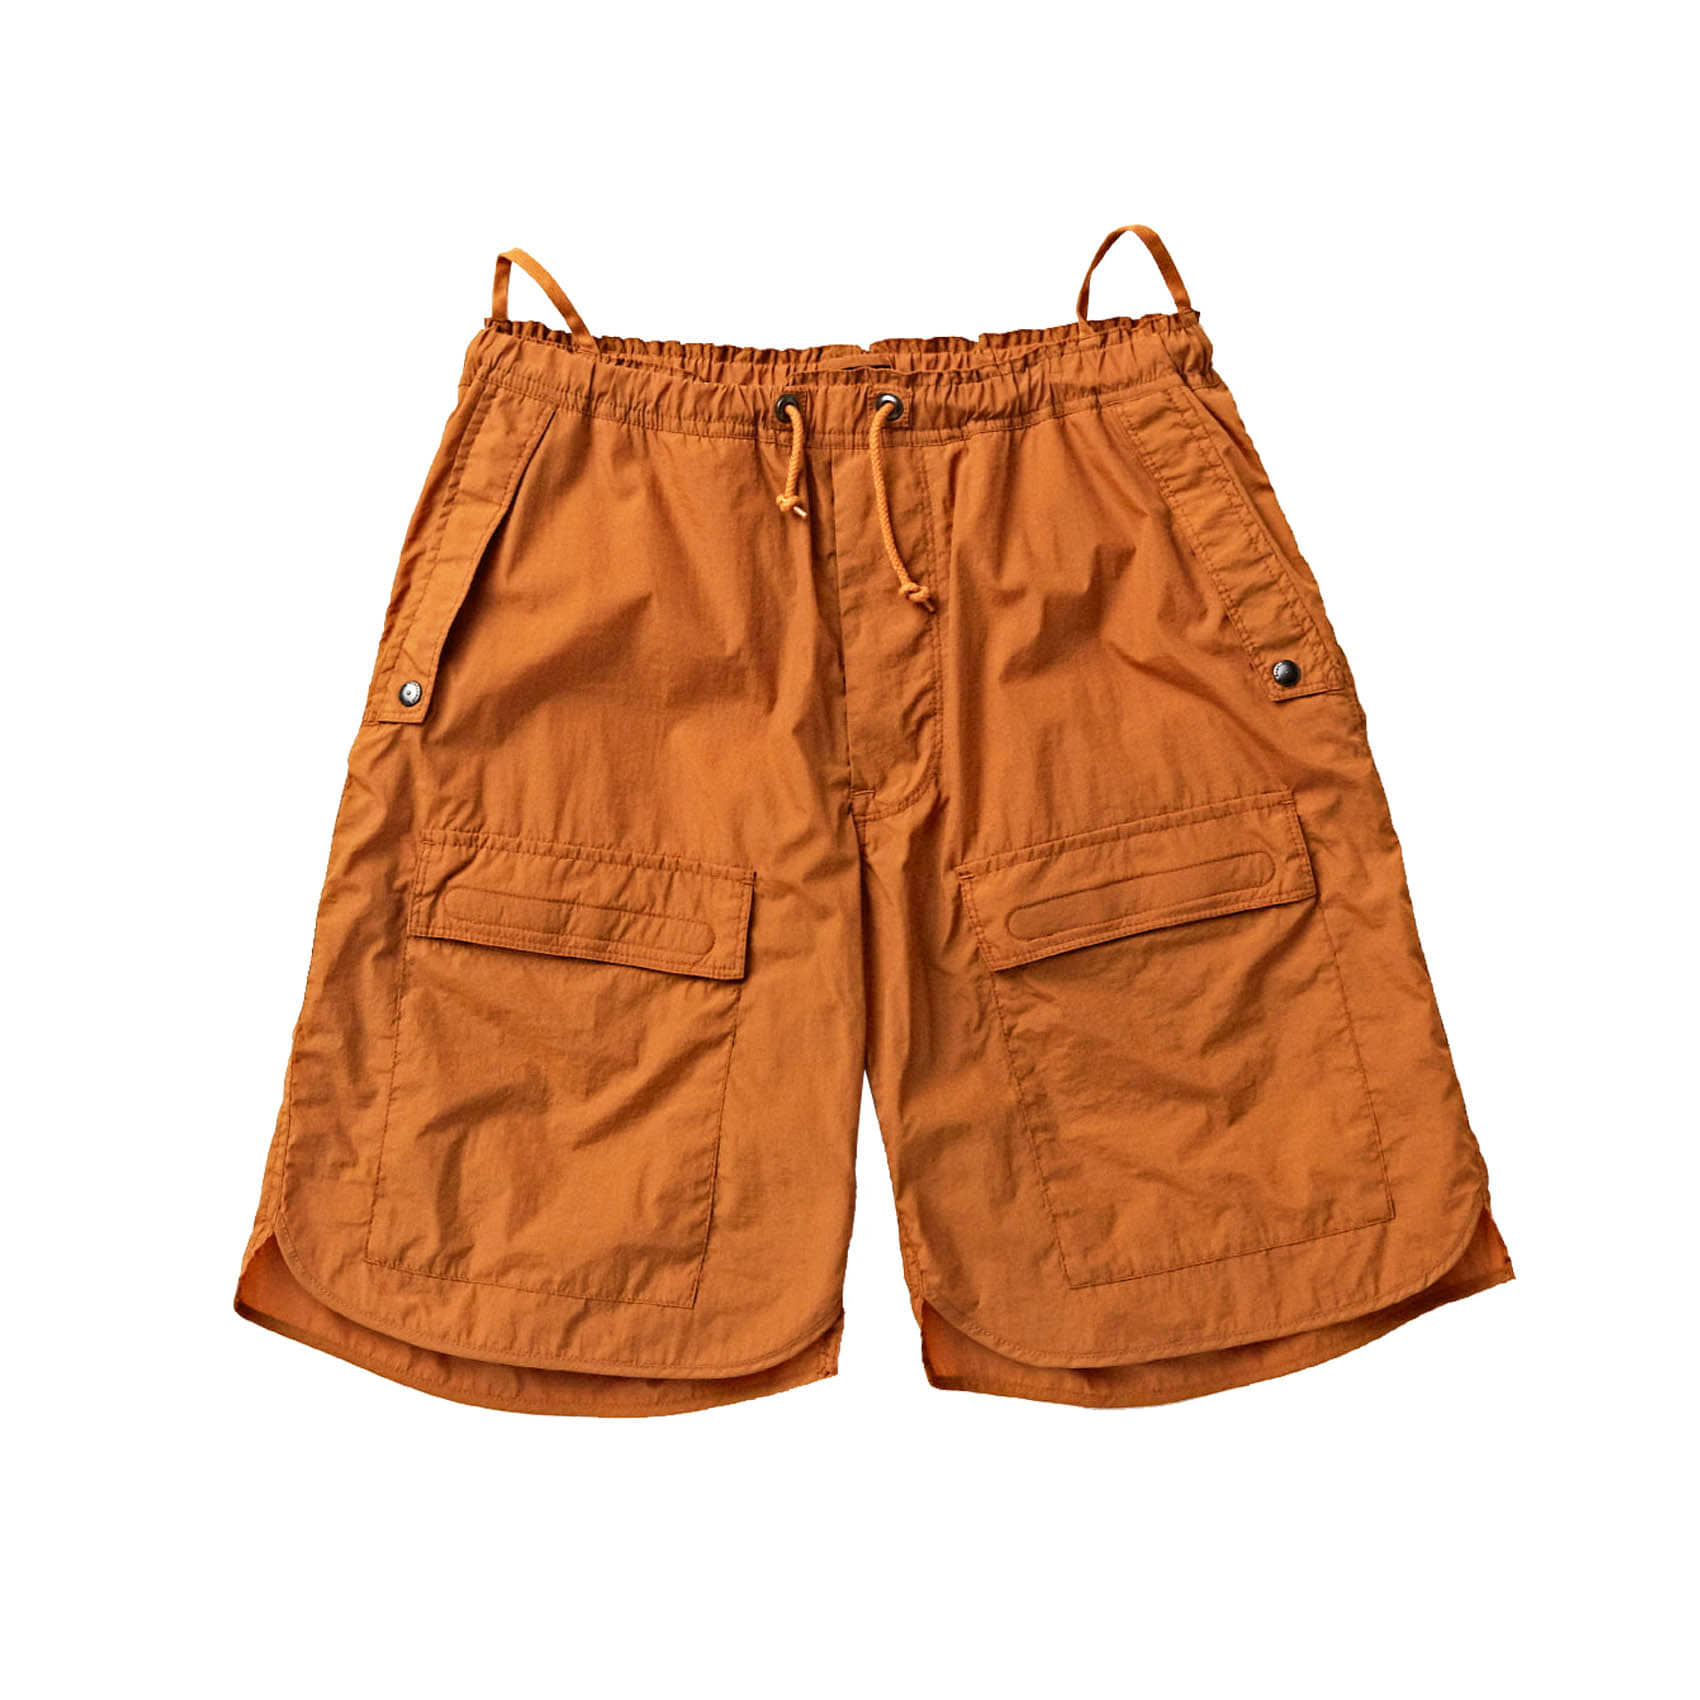 CBR SHORTS - ORANGE NYLON WASHER